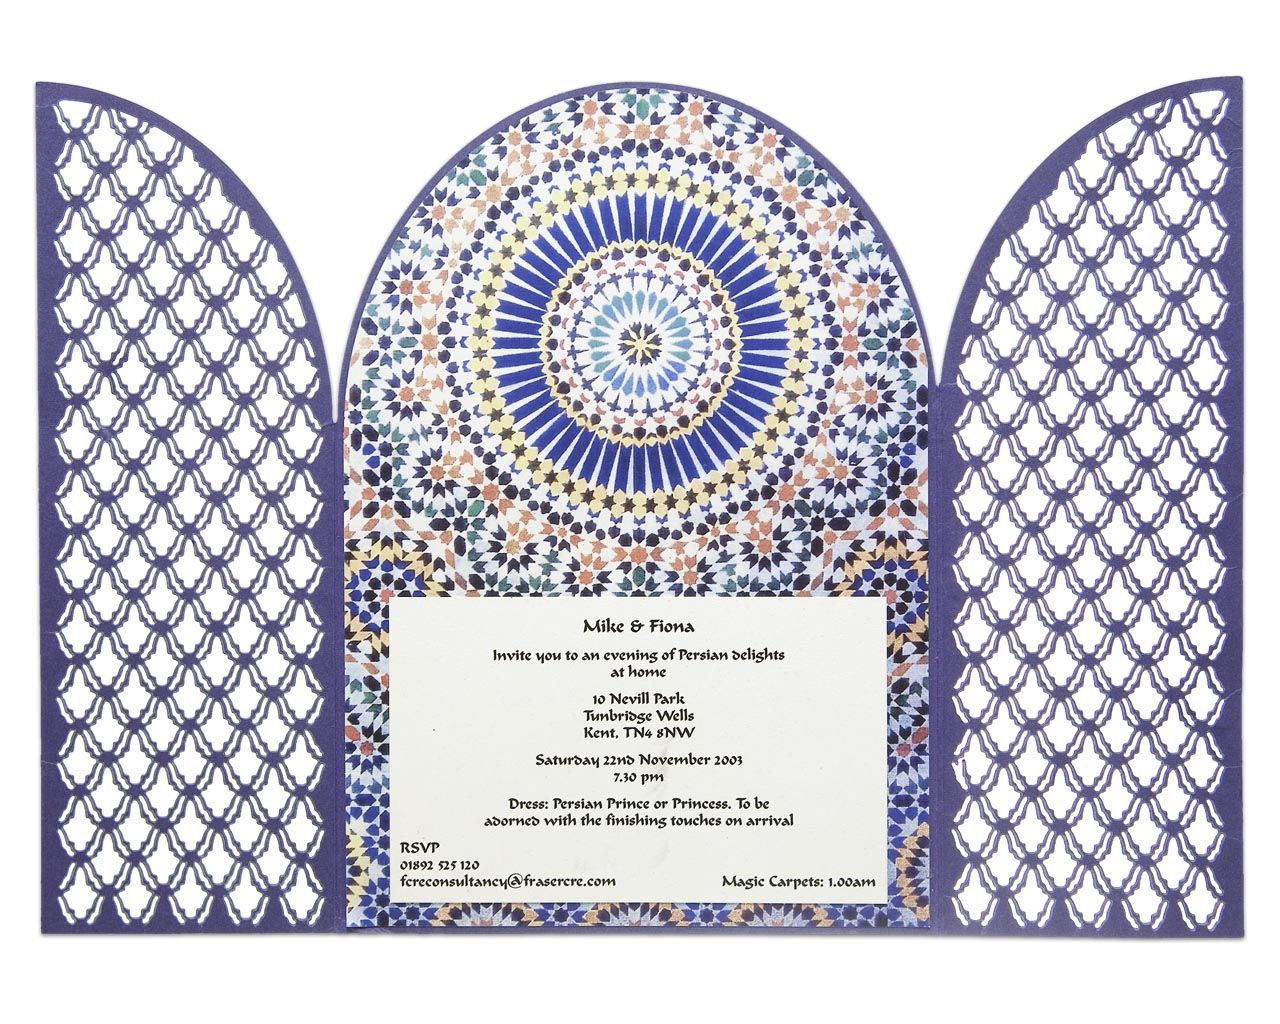 Moroccan Gated Design: Laser cut design with a Moroccan theme. We have also done a Bollywood versions of this in pinks, golds and reds. A striking design that will give a lasting impression for your guests and get them prepared for a great party!